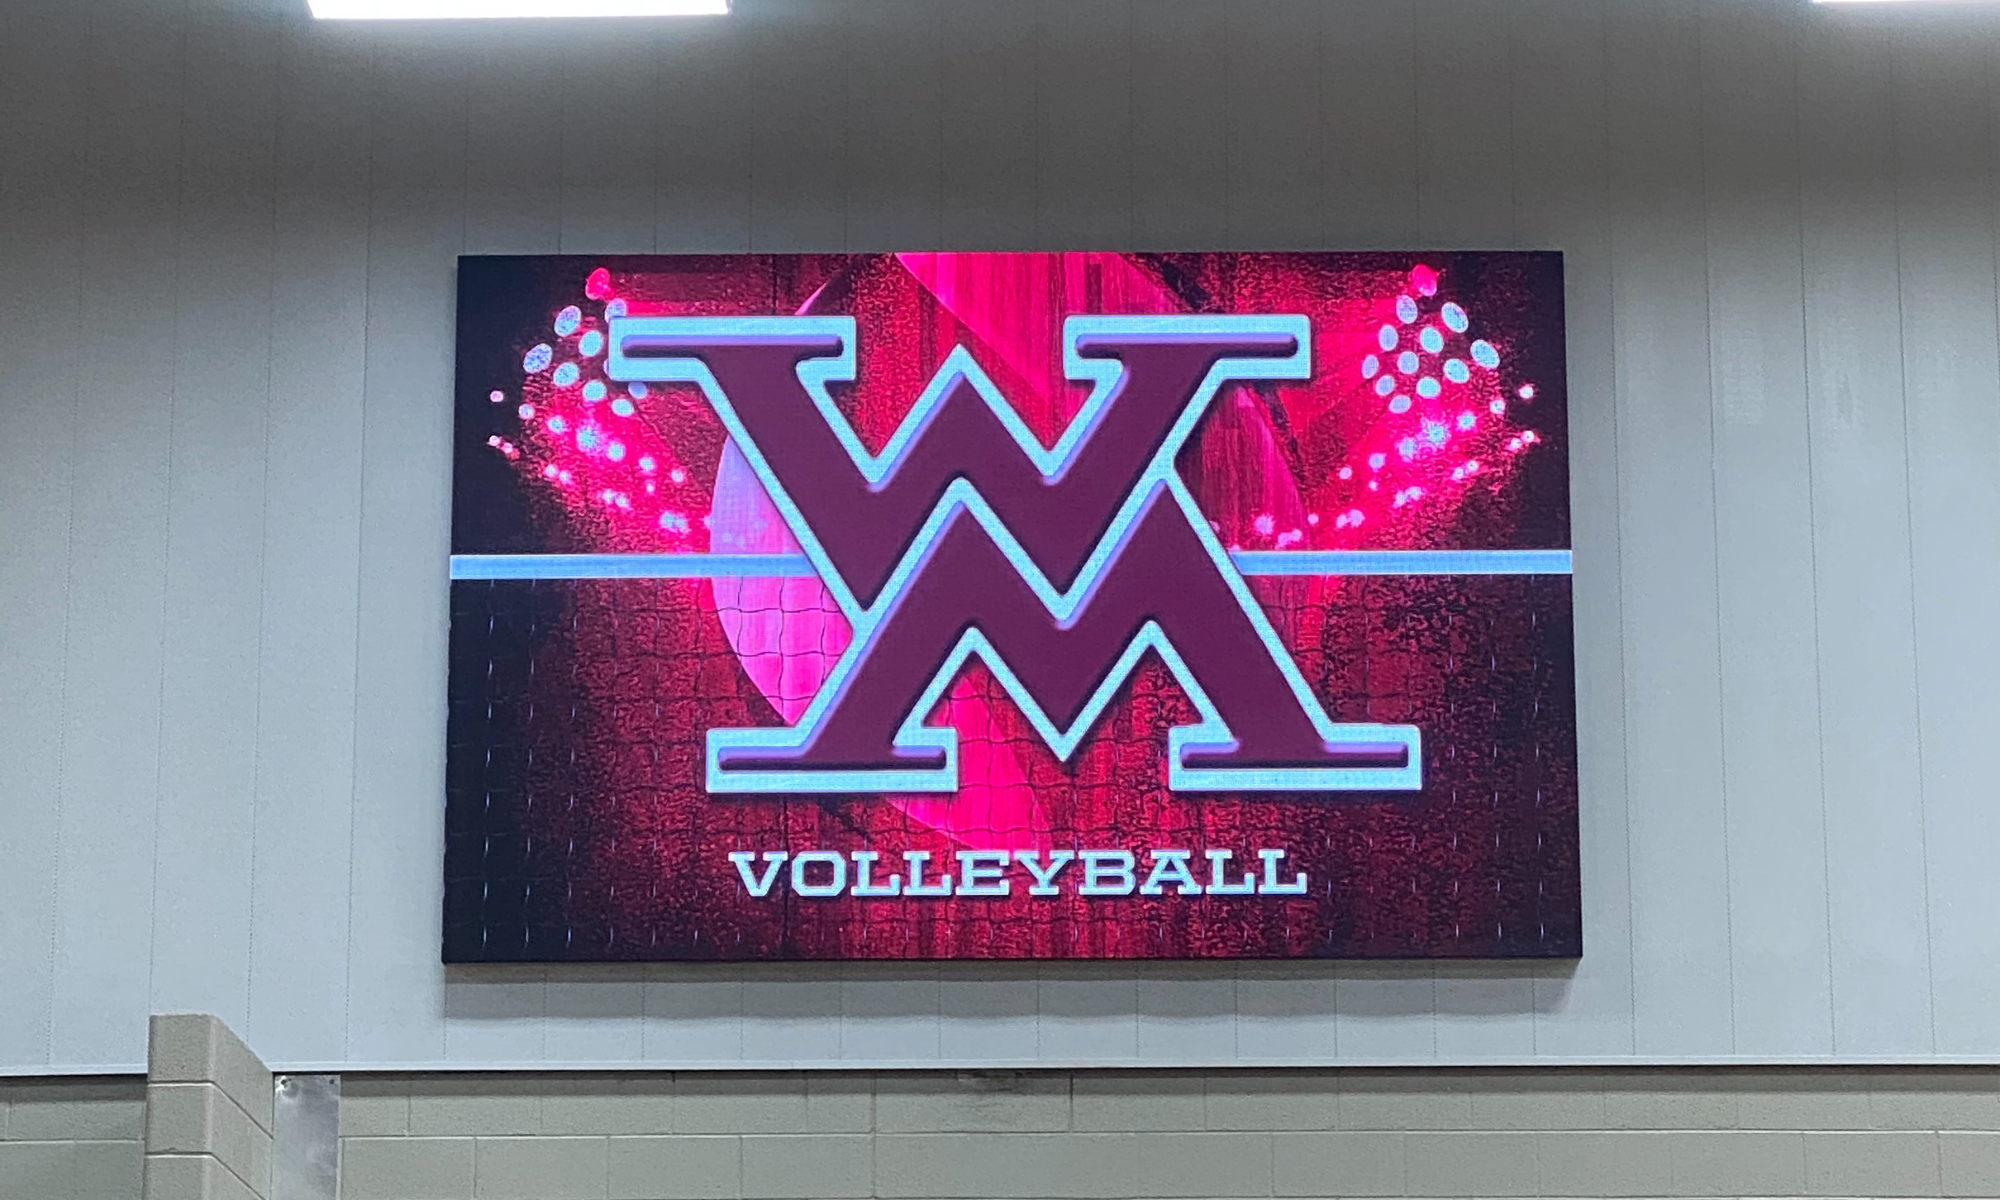 7' x 12' LED Video Wall